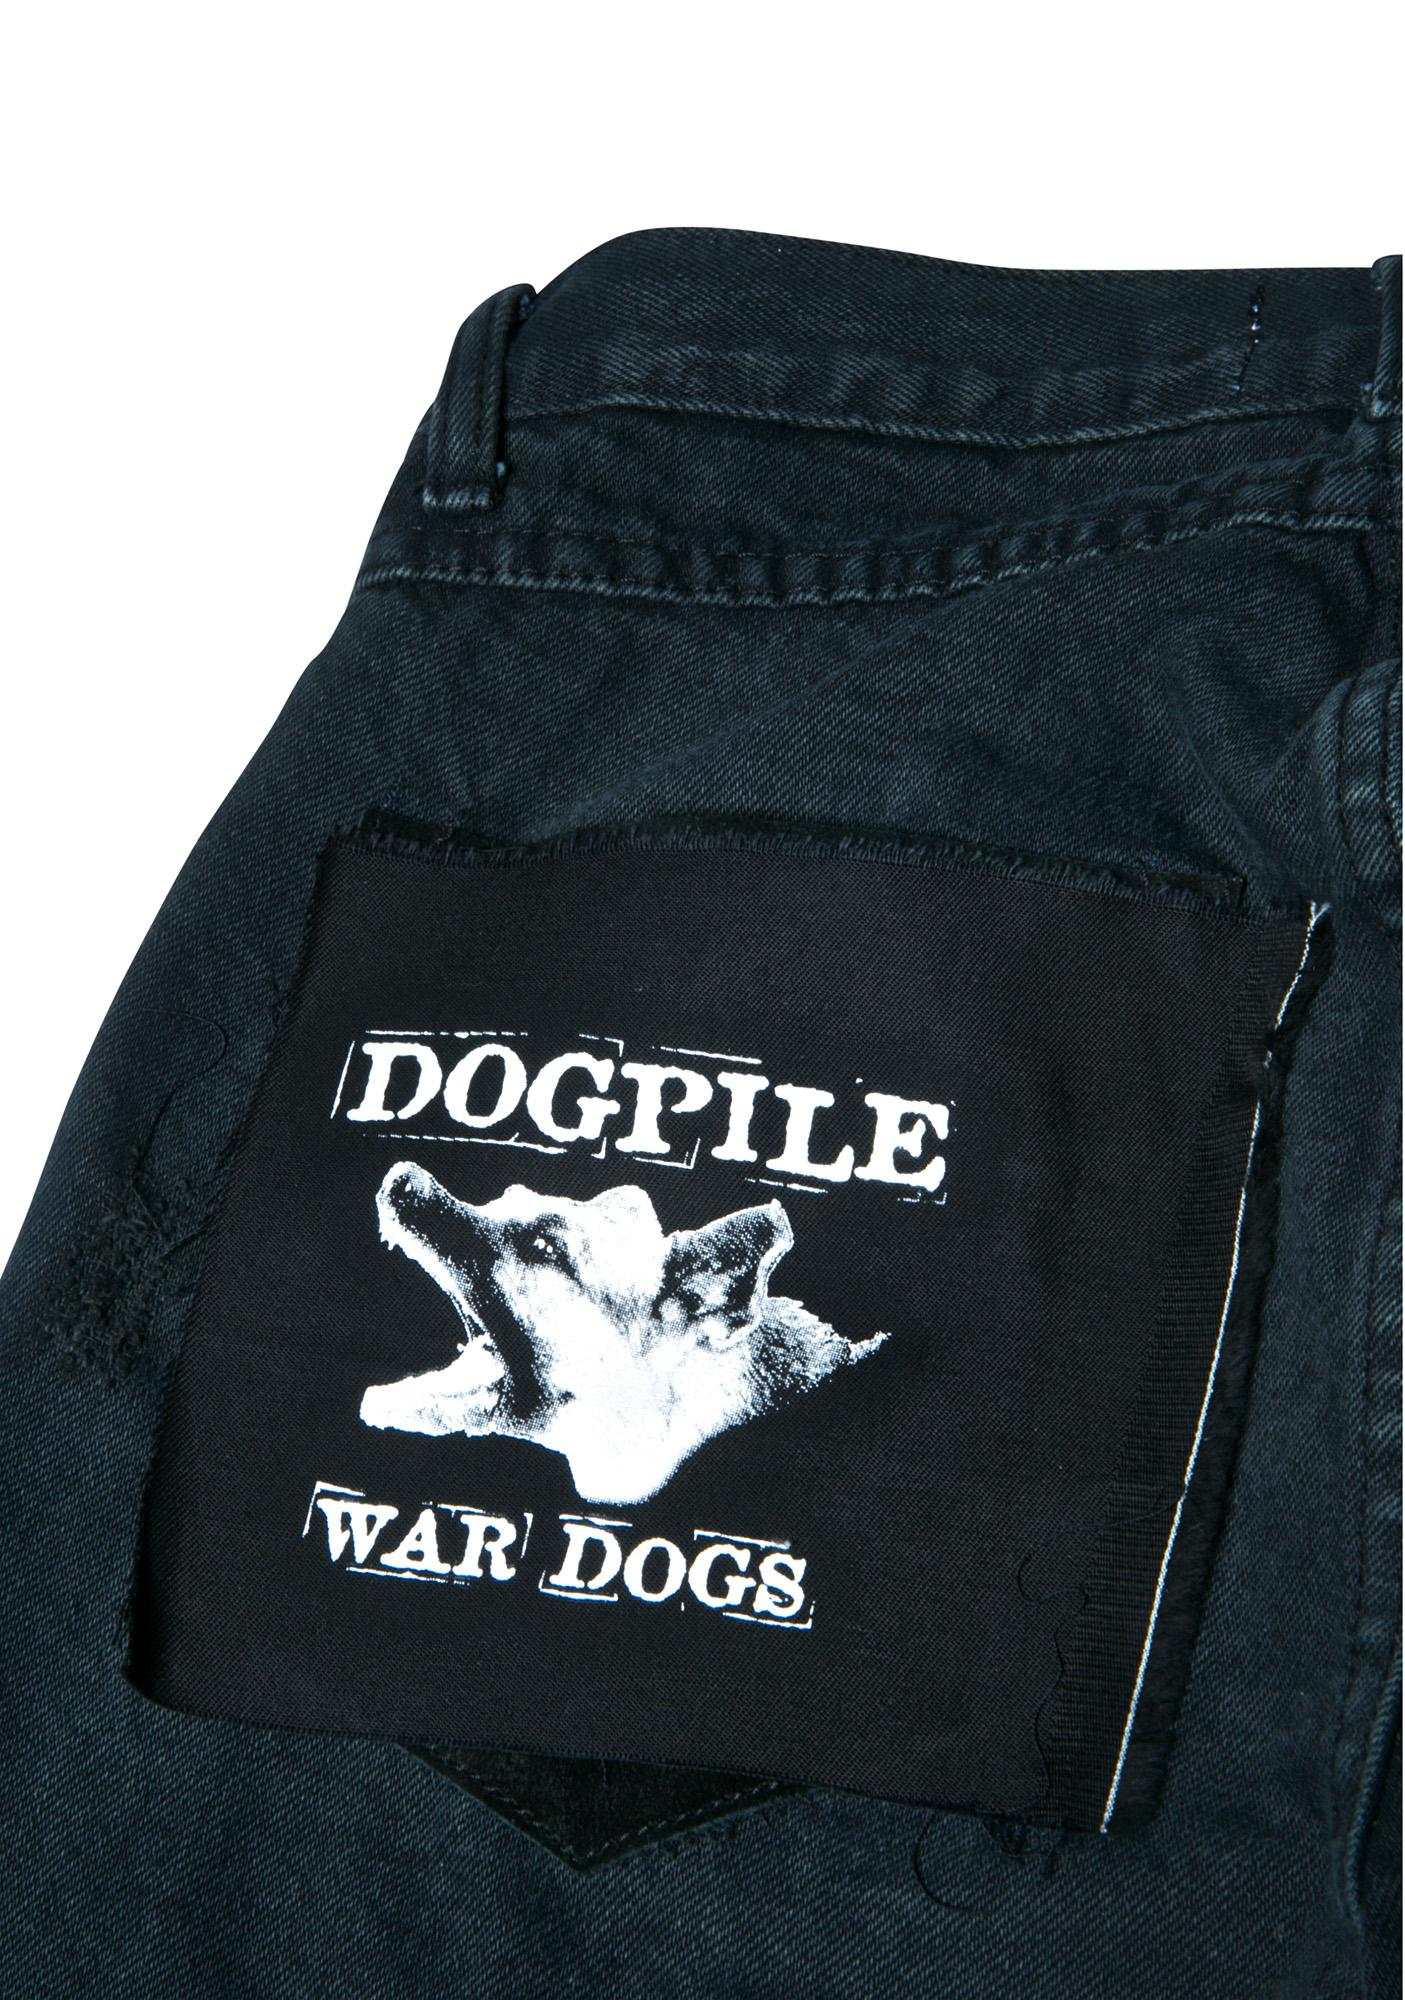 War Dogs Patch